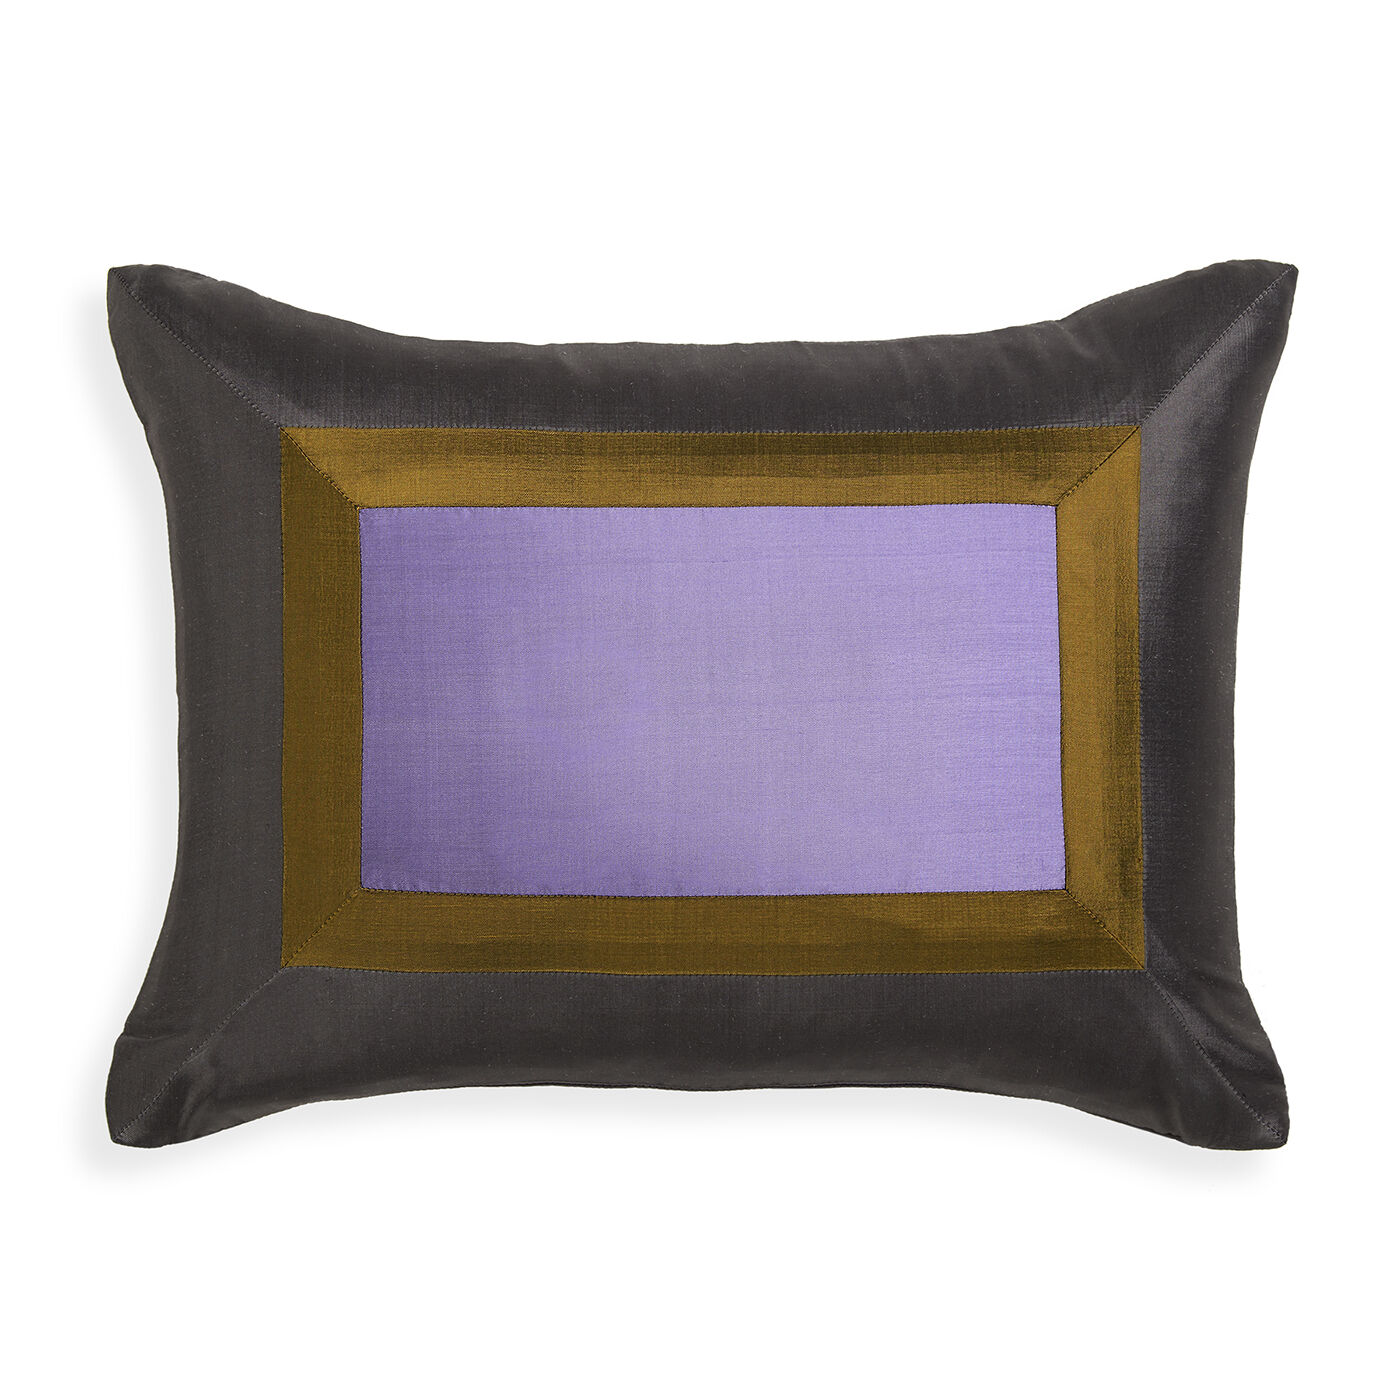 Lavender Siam Silk Throw Pillow Modern Holding Category for